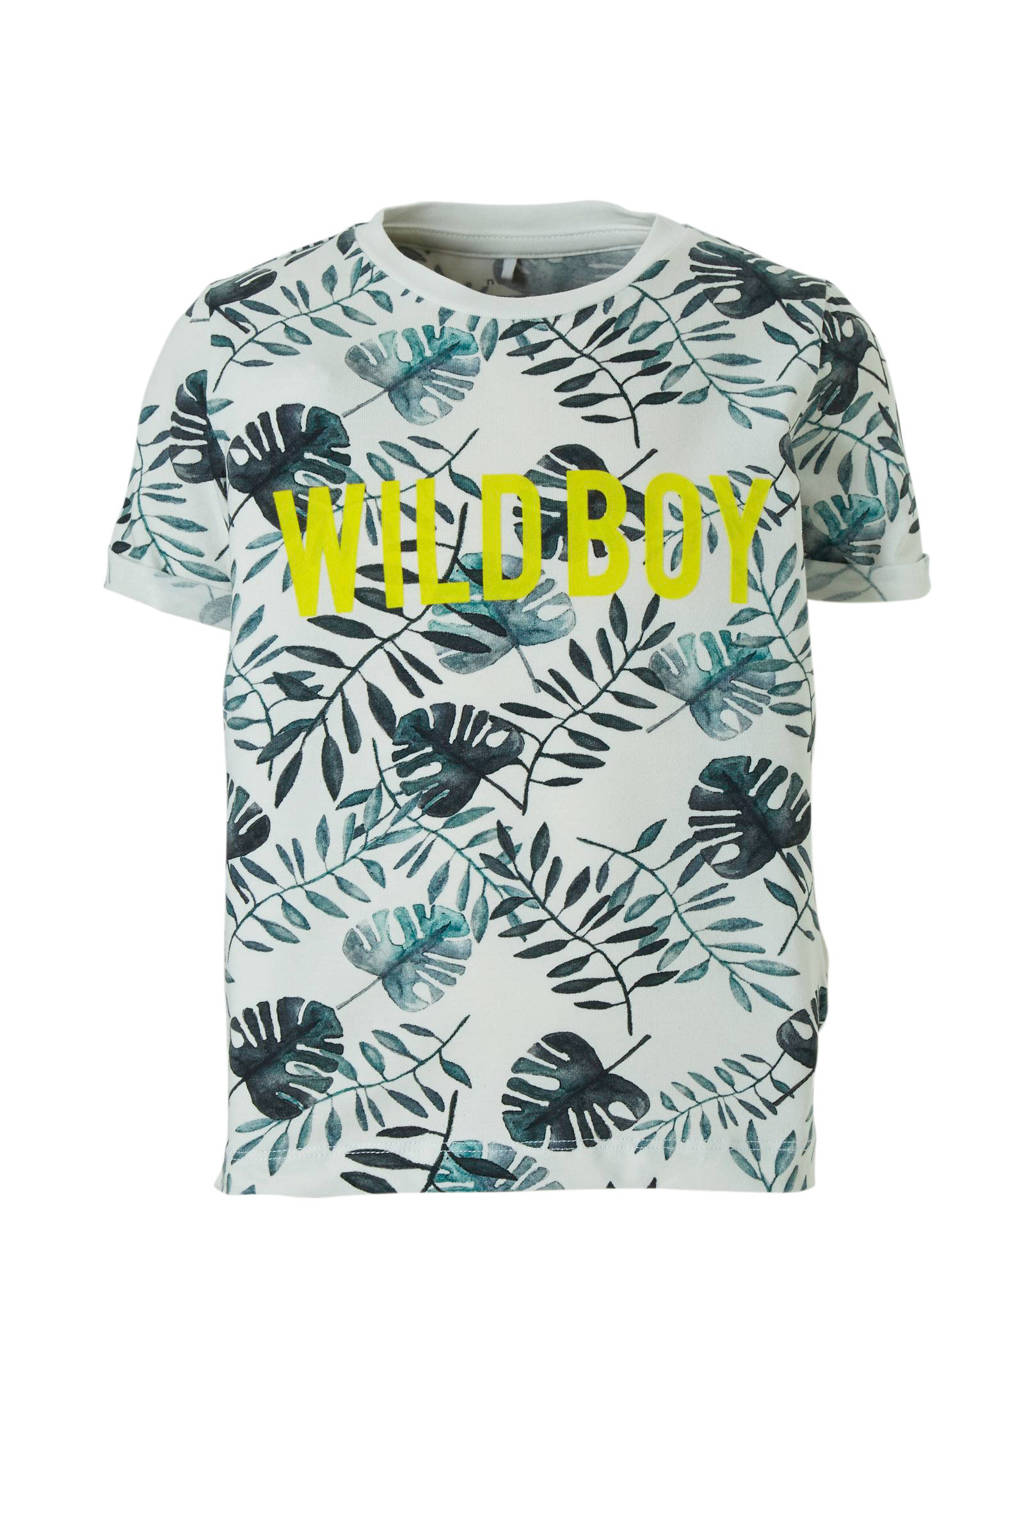 NAME IT T-shirt Facool wit, Wit/ groen